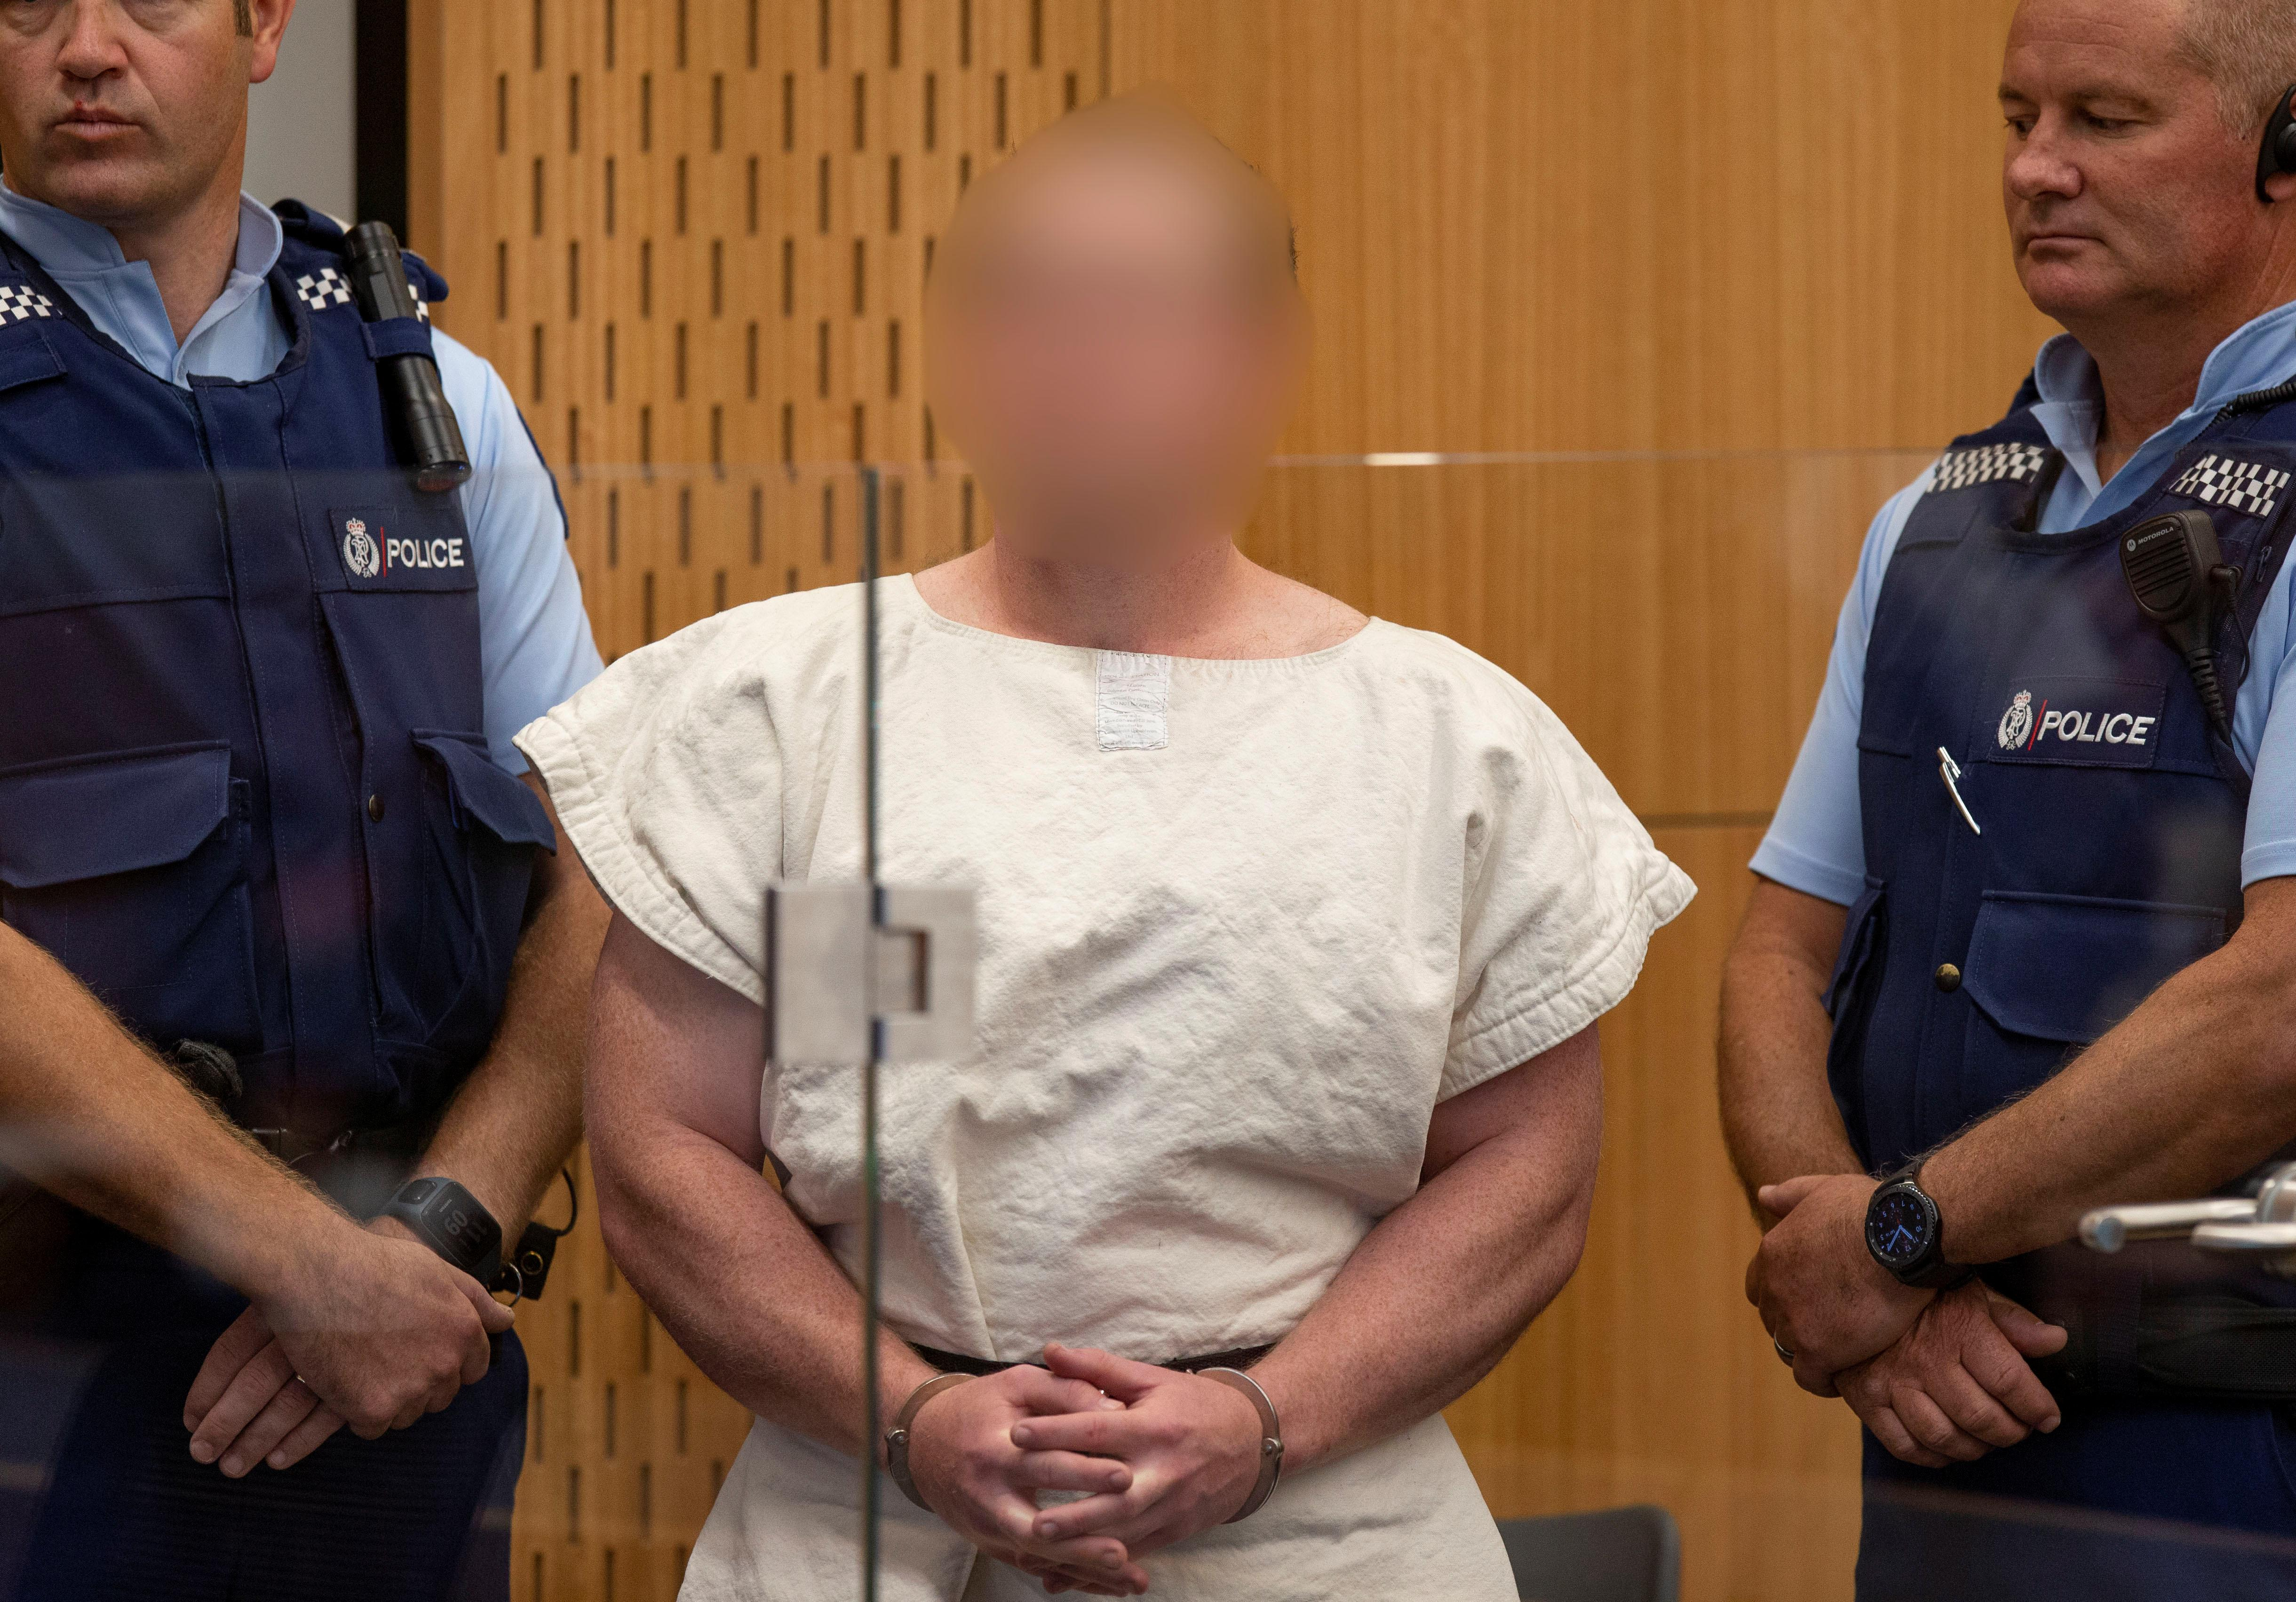 No news, no visitors: Accused Christchurch gunman isolated in prison